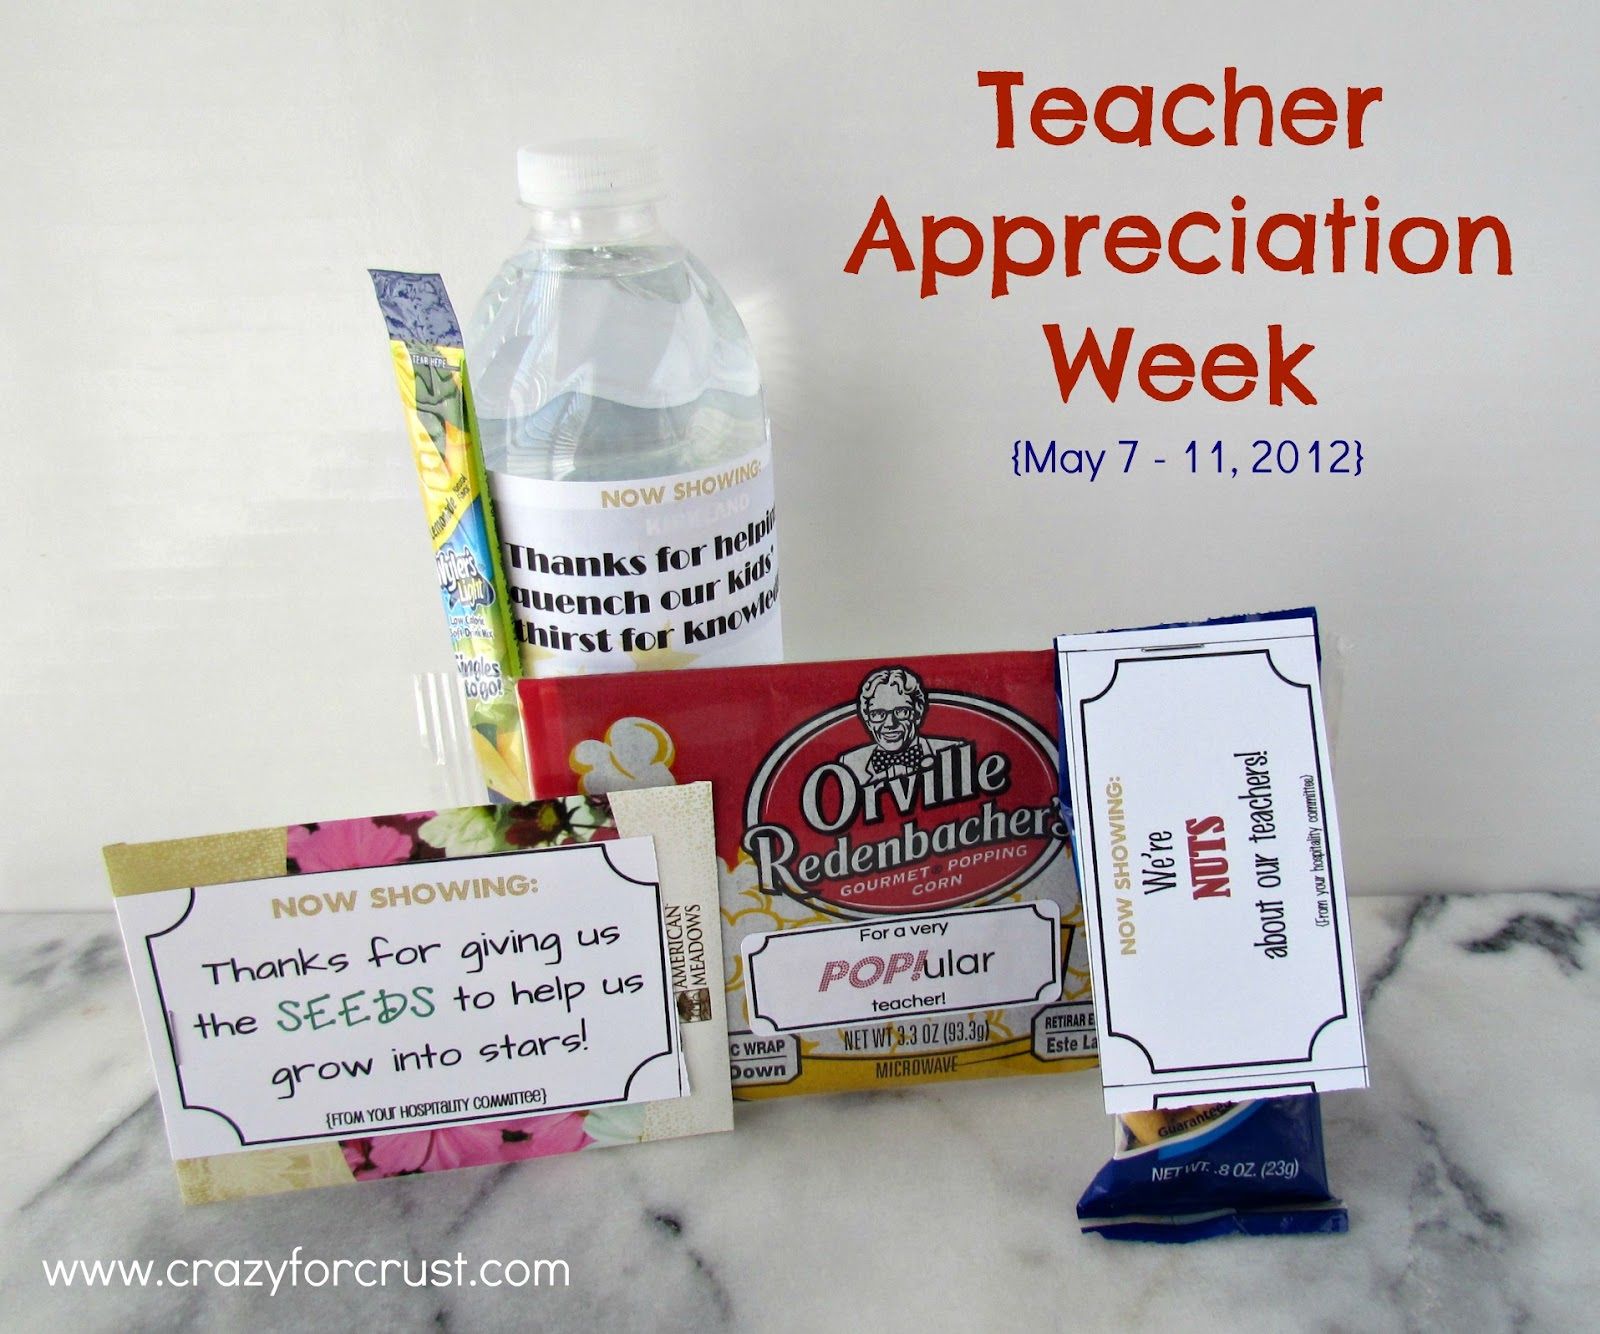 Classroom Ideas For Teacher Appreciation Week ~ Teacher appreciation ideas free printables crazy for crust